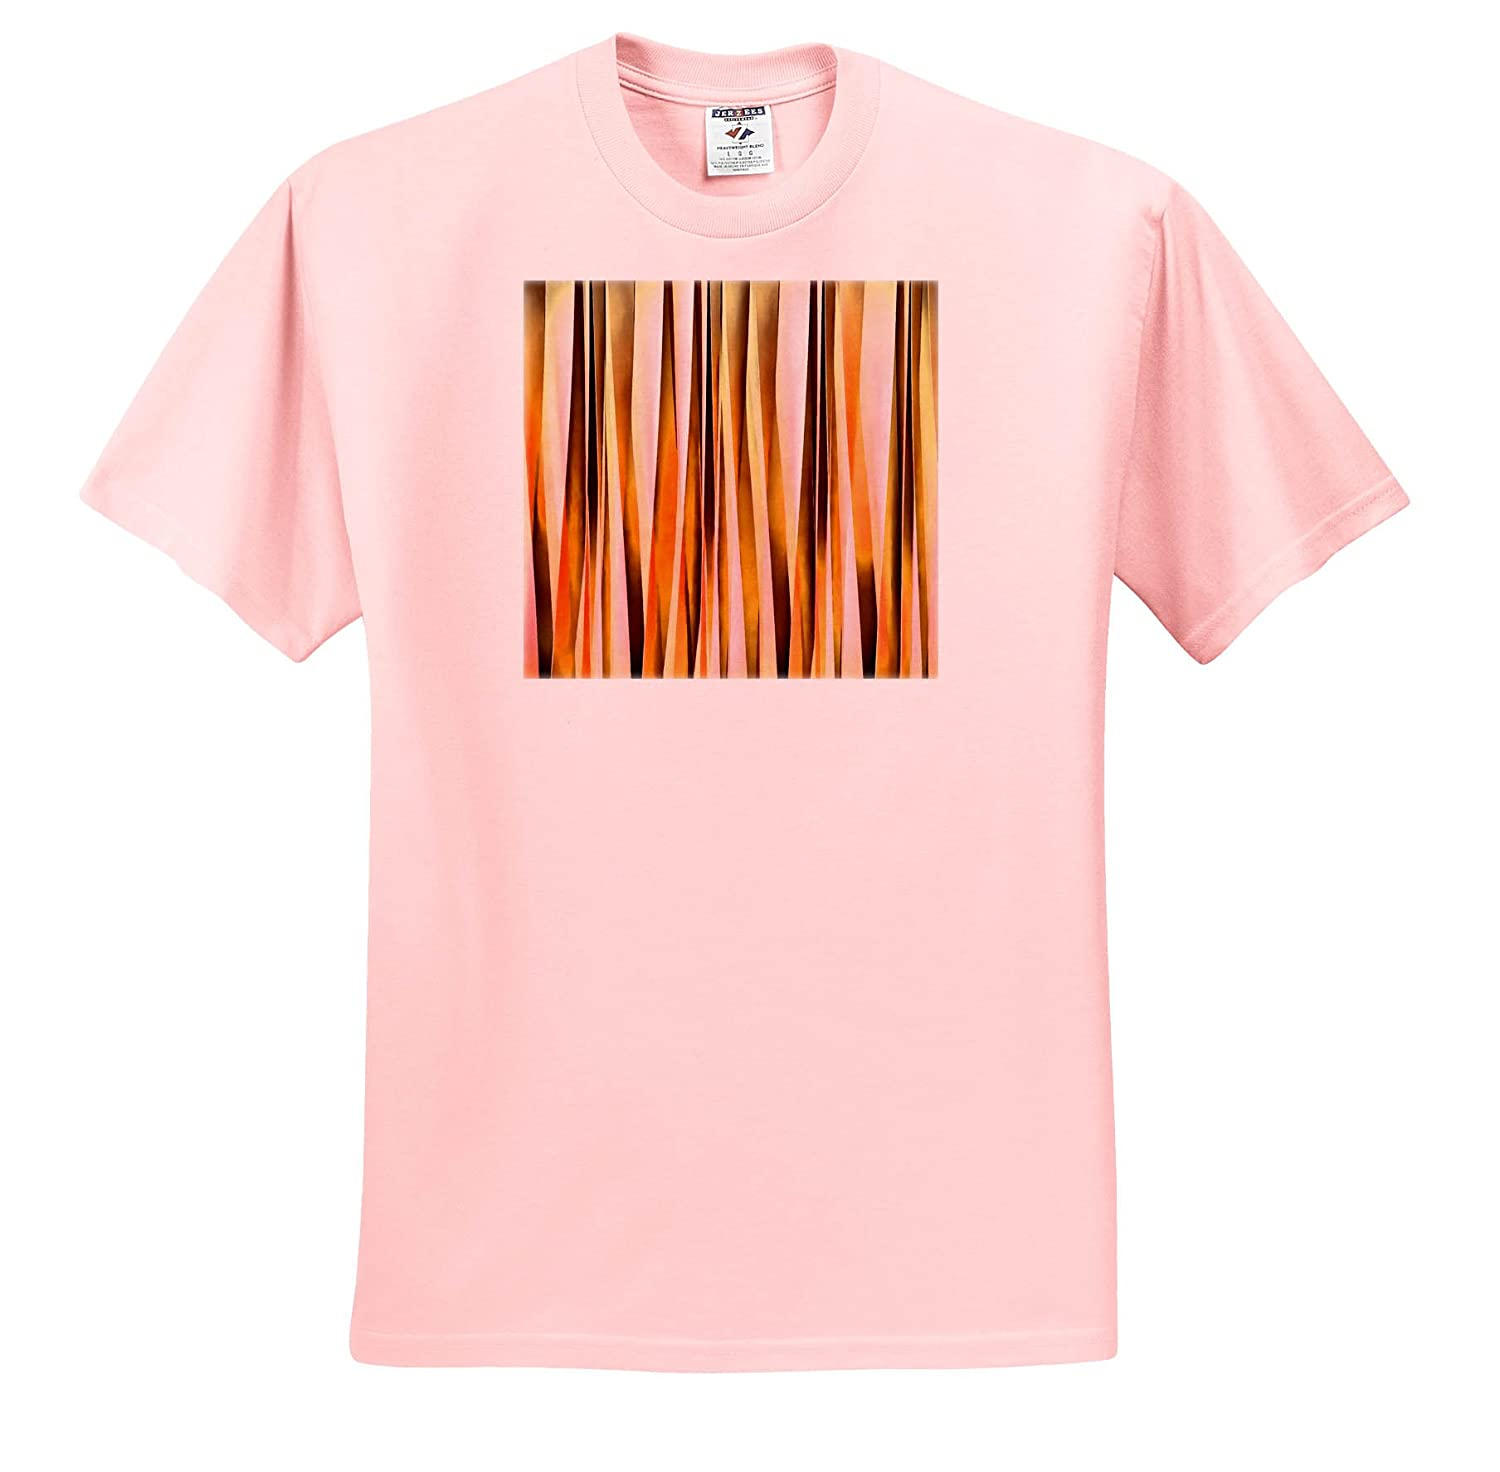 db56bbd4dac0 Taiche - Acrylic Painting - Abstract - Orange Brown and Peach Autumn Stripy  Lines Pattern - T-Shirts - Light Pink Infant Lap-Shoulder Tee (18M) ...